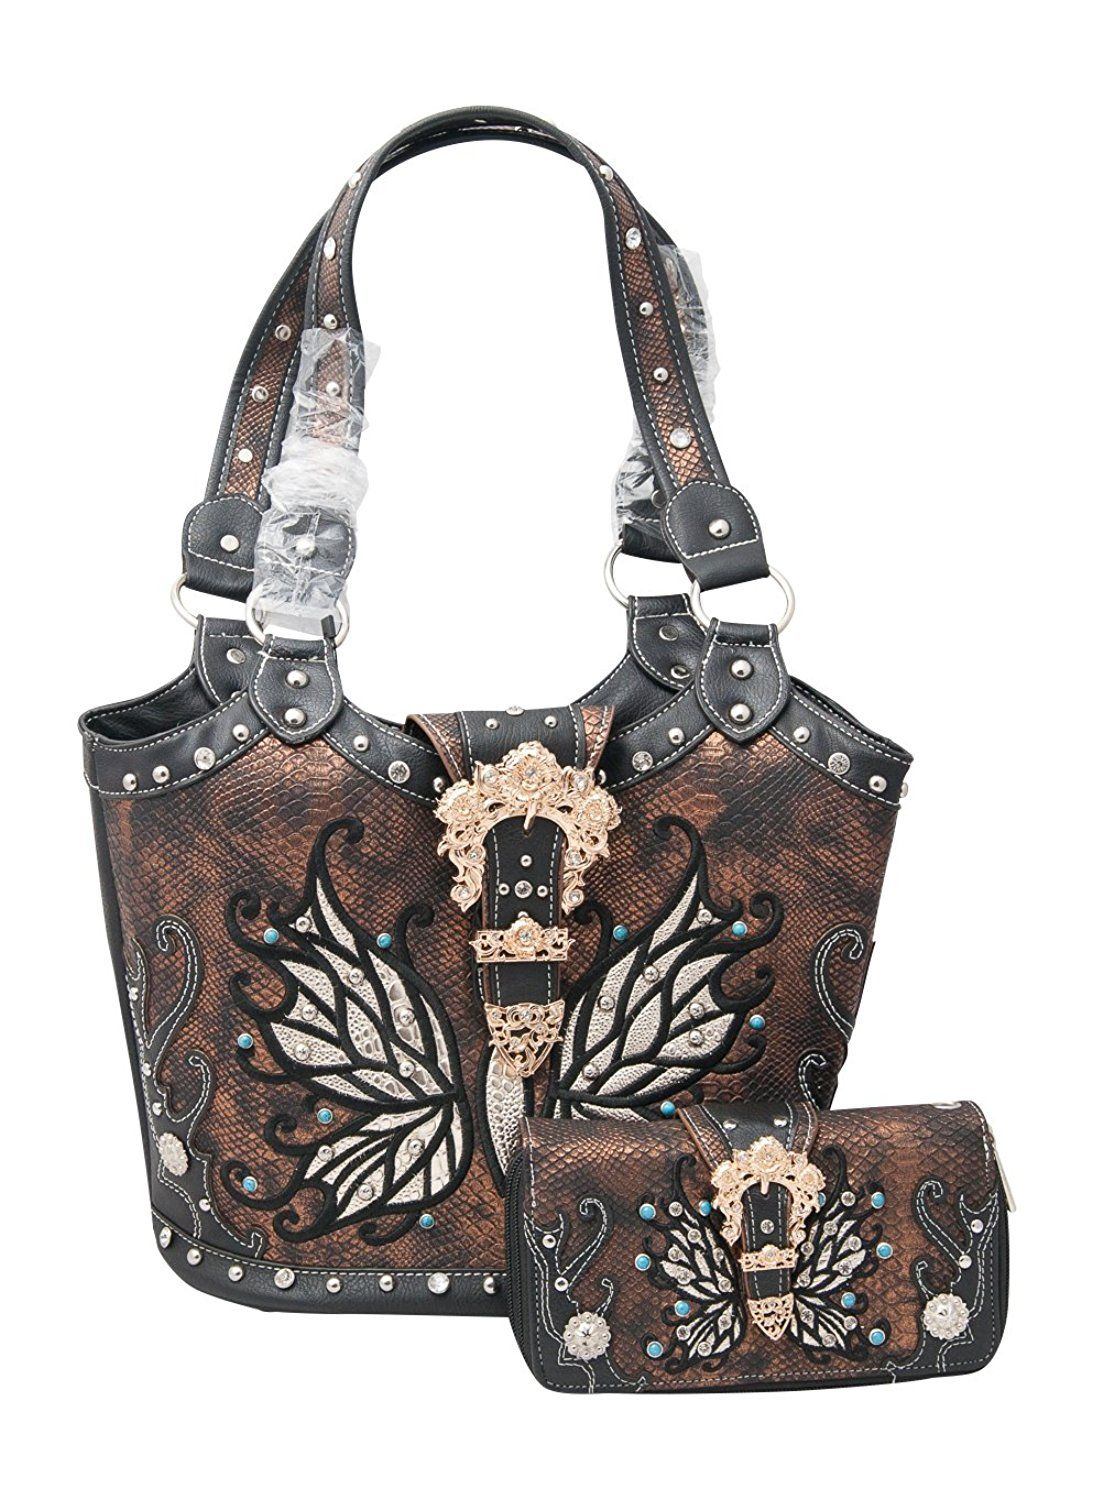 Cowgirl Trendy Western Concealed Carry Butterfly Belt Python Tote Handbag  and Wallet    You can 65d2748798ada